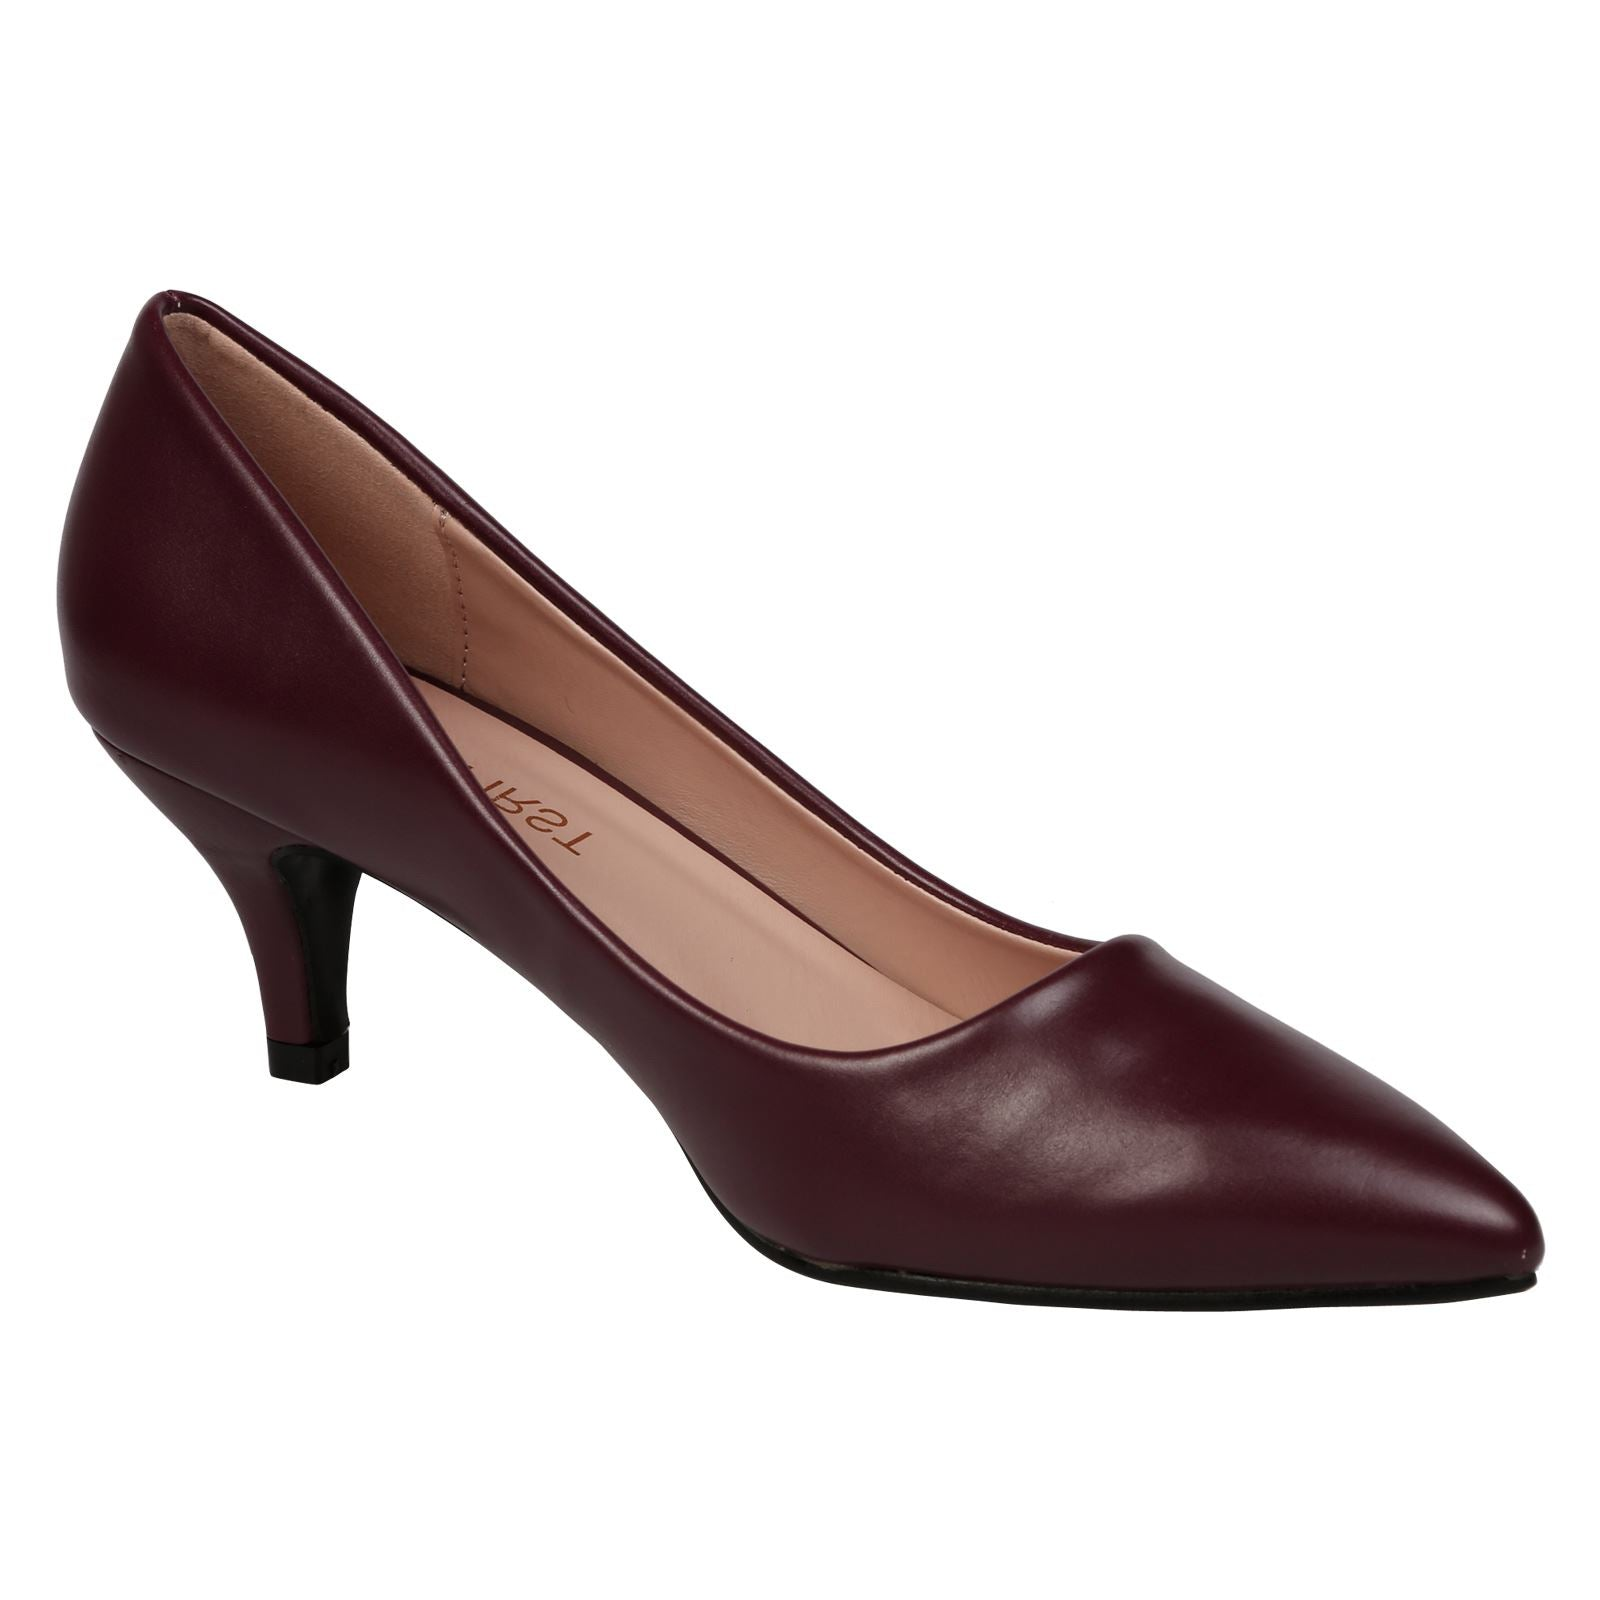 Miranda Kitten Heel Pointed Toe Court Shoes in Wine Faux Leather